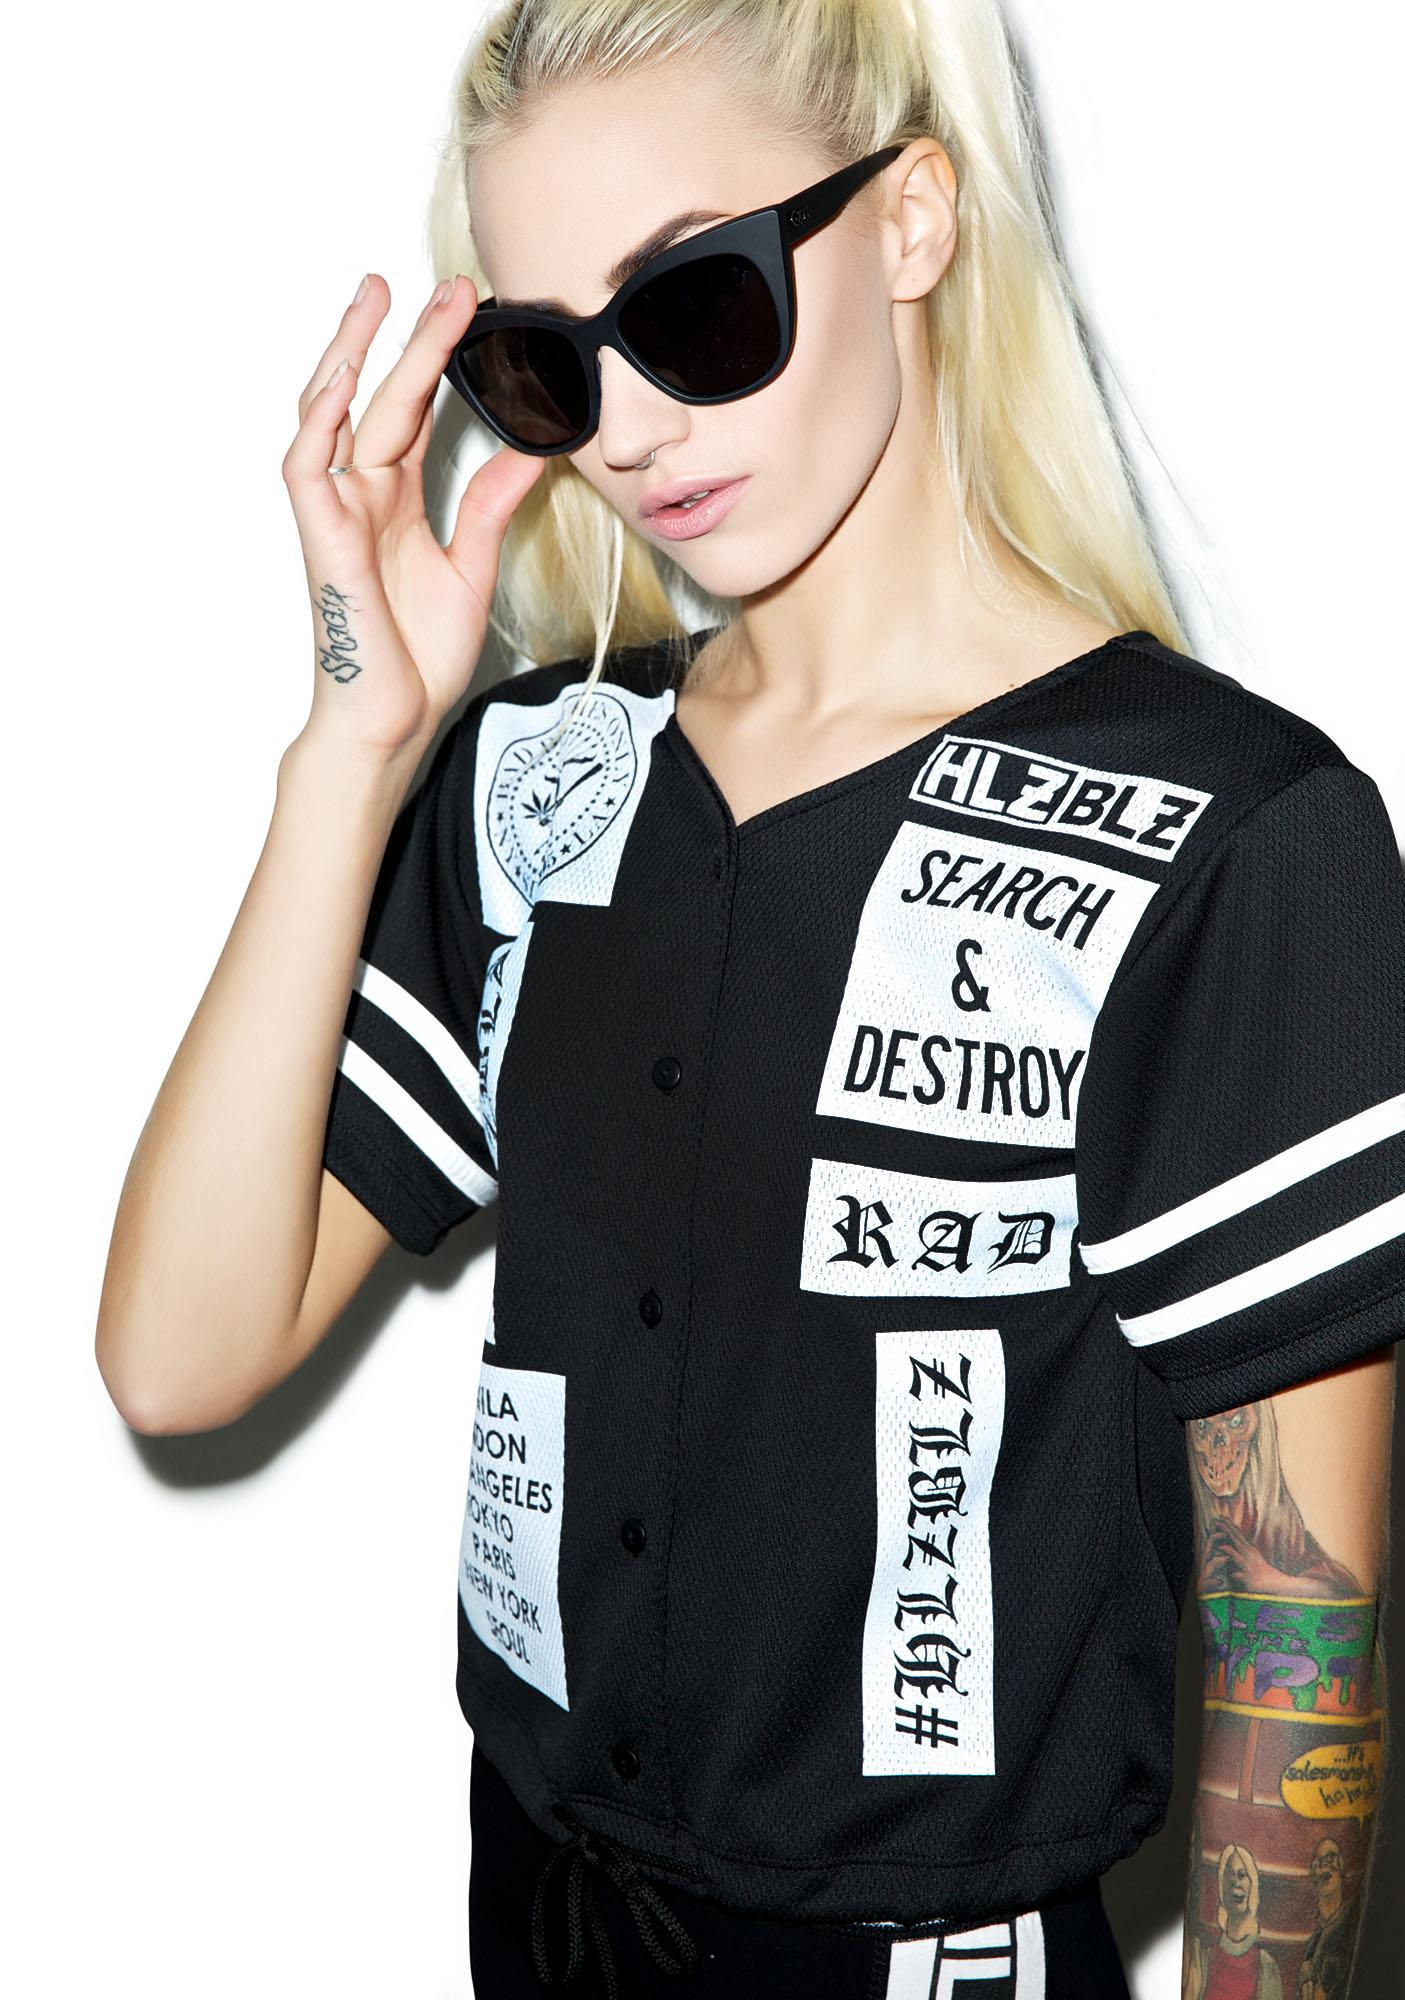 HLZBLZ Search & Destroy Jersey